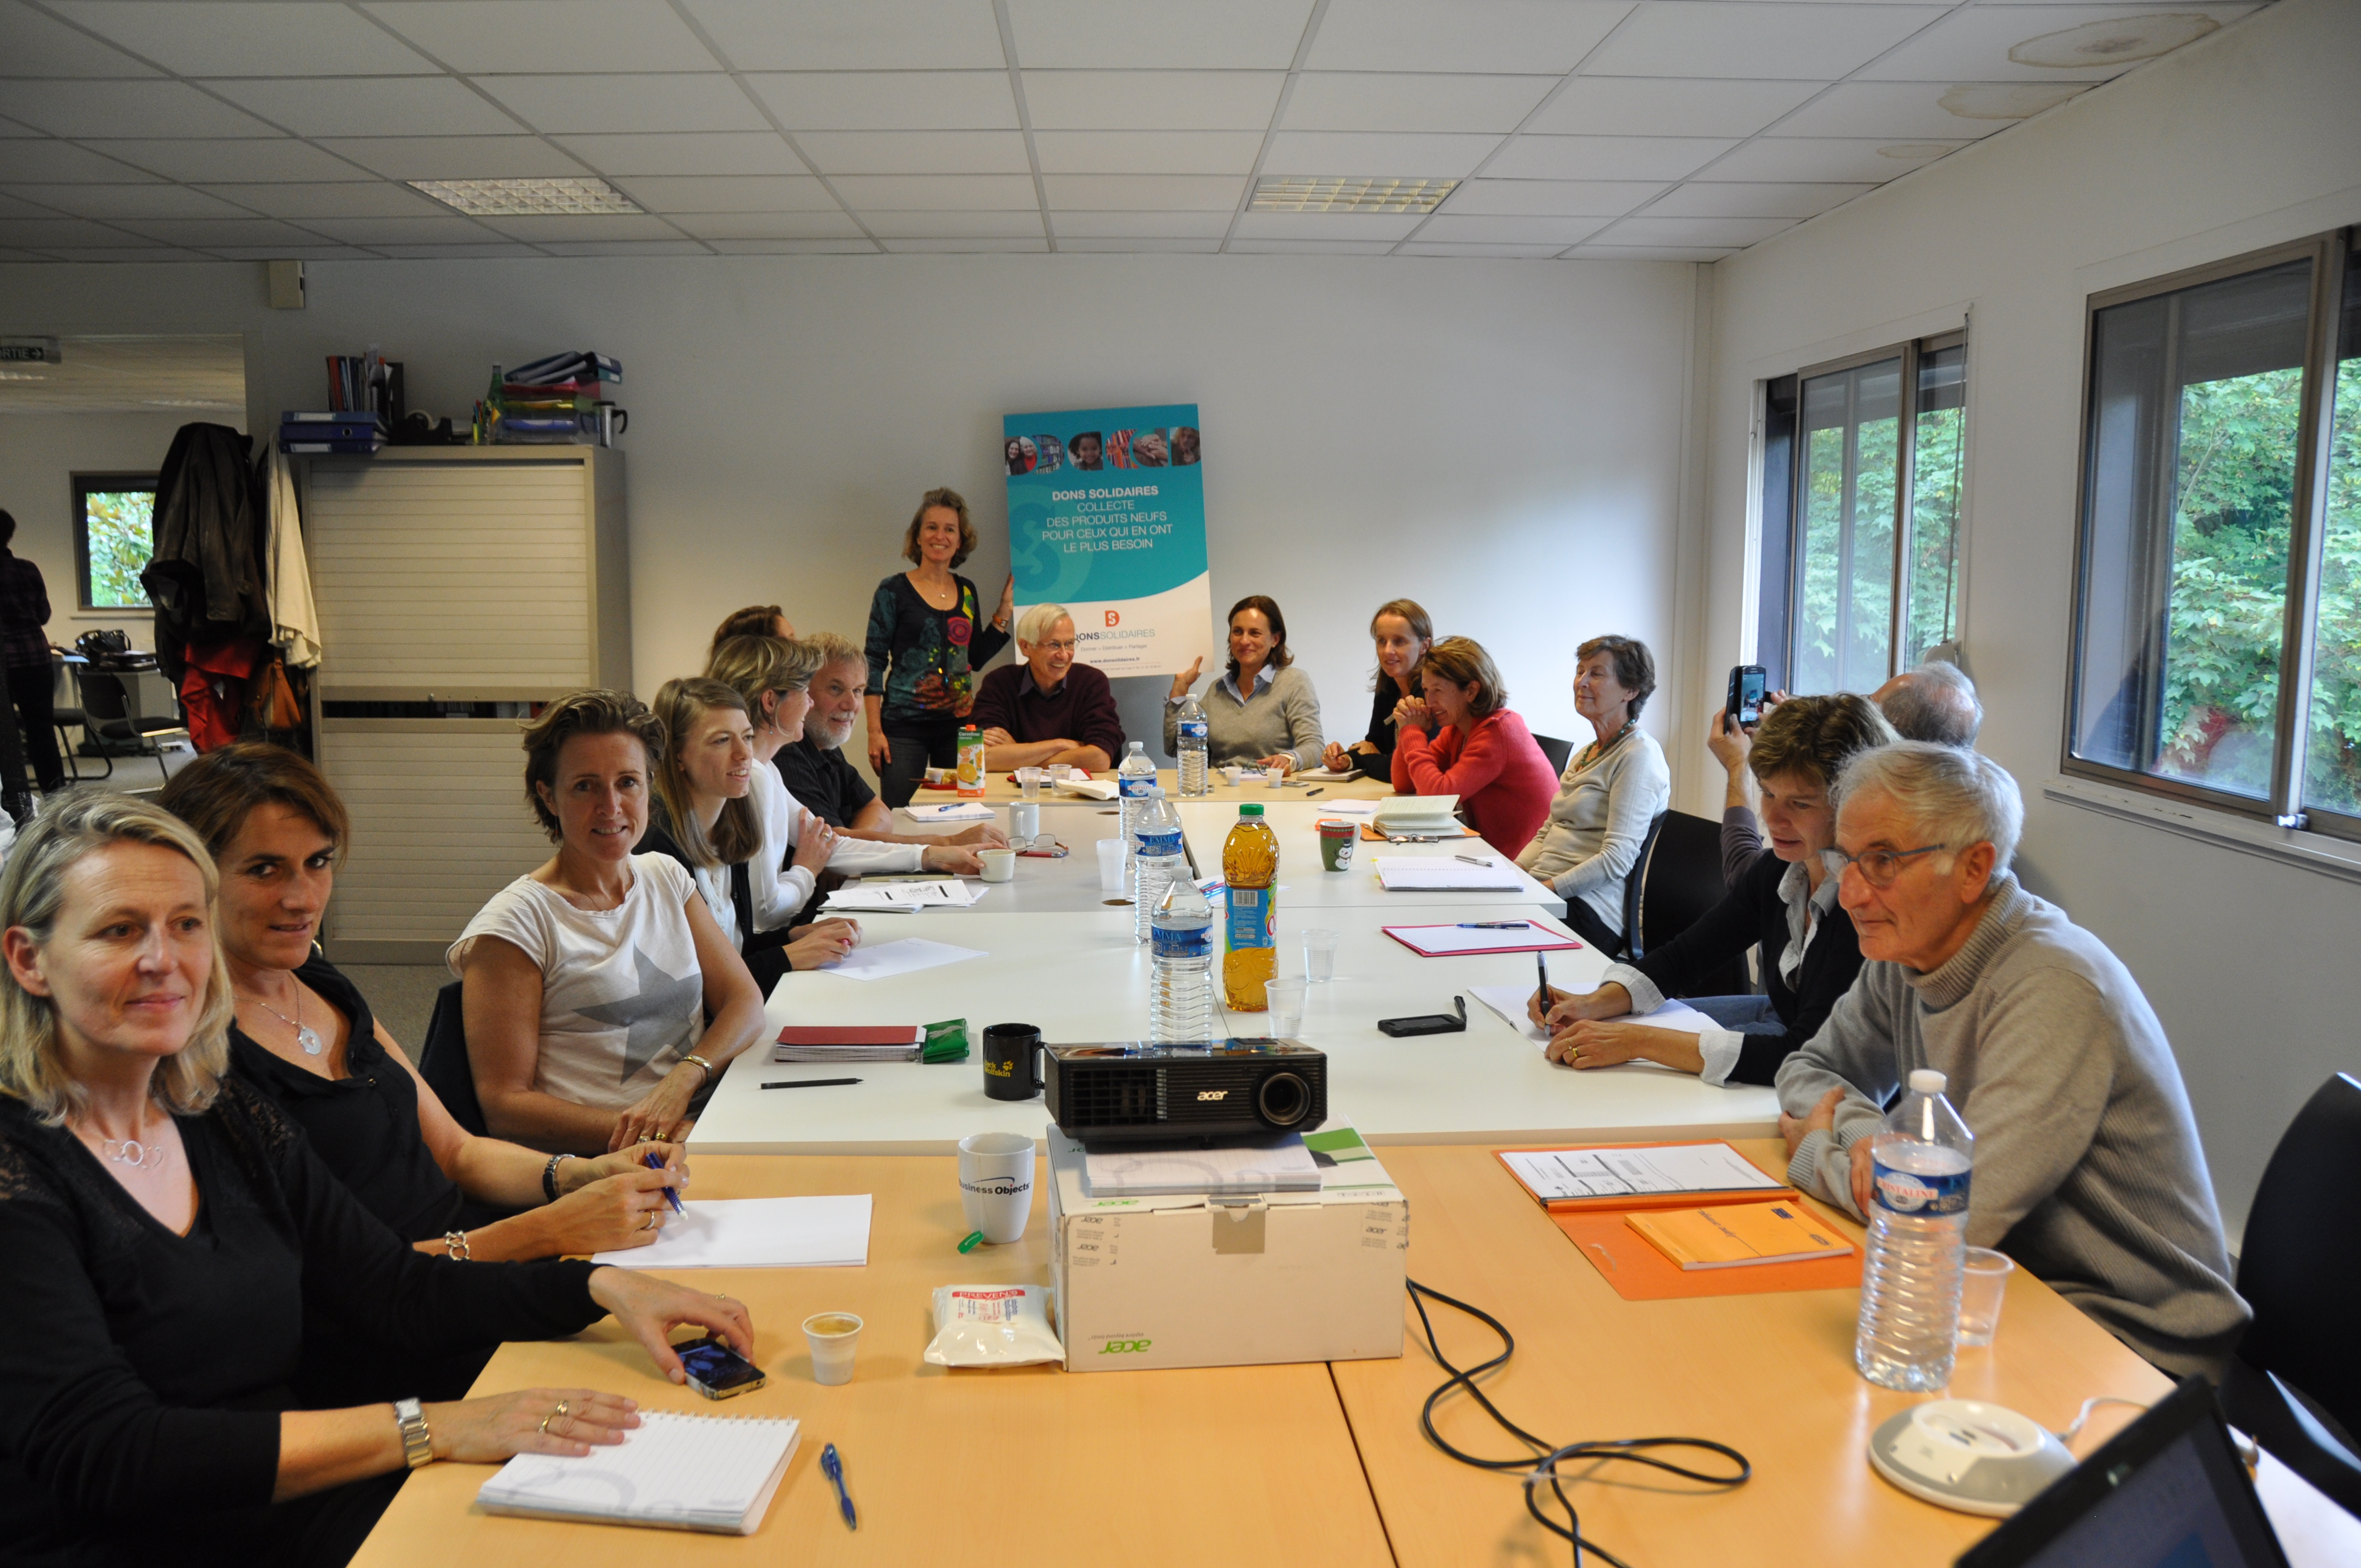 Dons solidaires donner distribuer partager for Idees entreprise lucrative